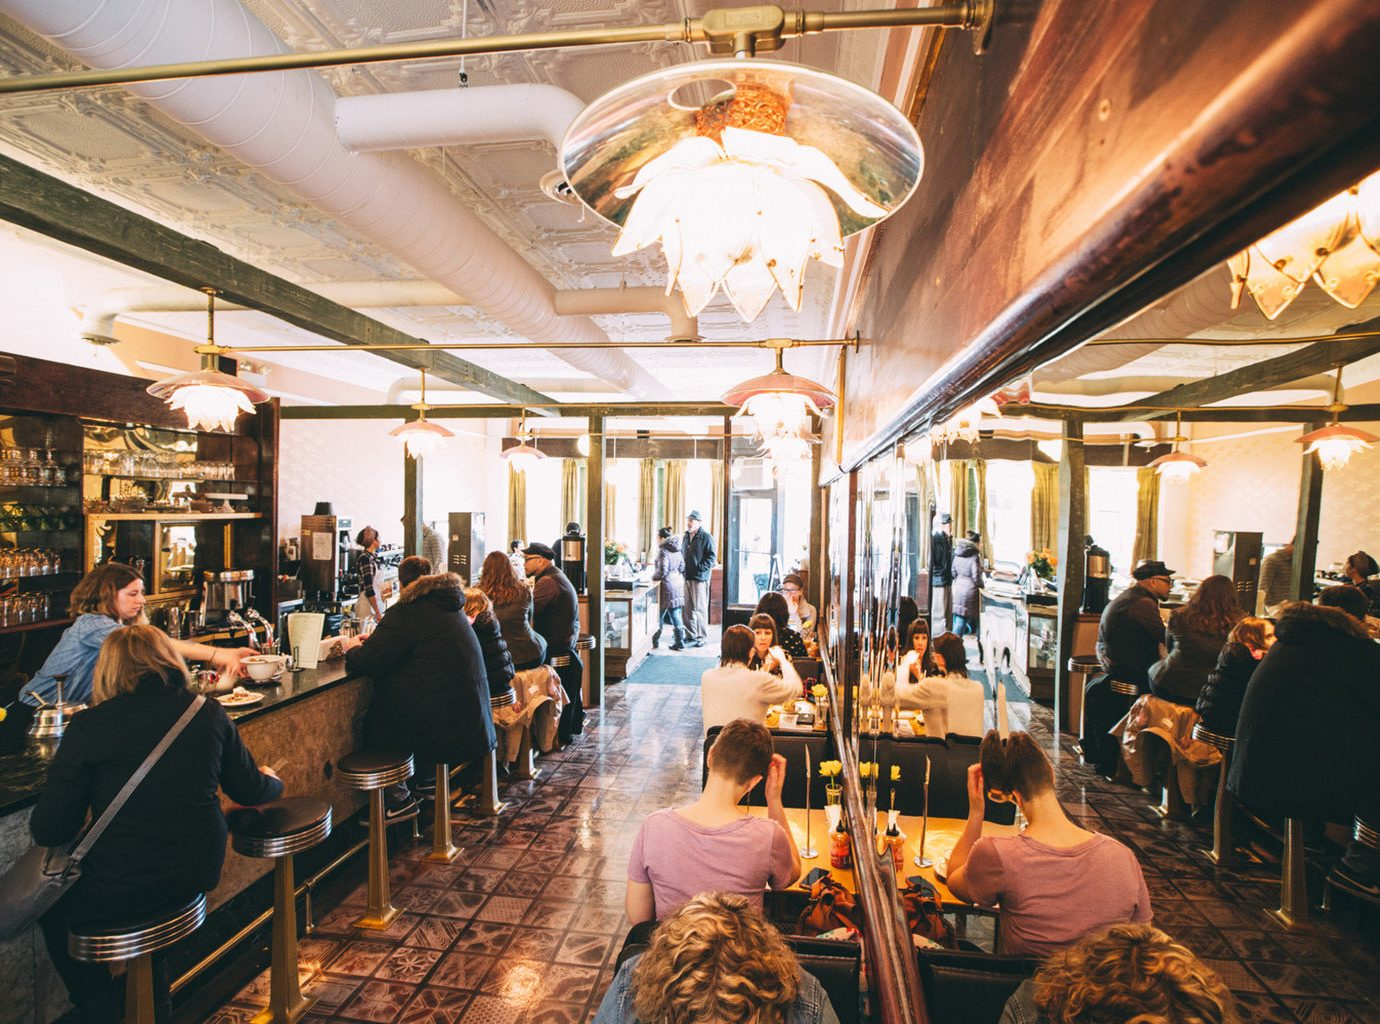 Trip Ideas indoor person ceiling people meal group restaurant Bar dining room several crowd